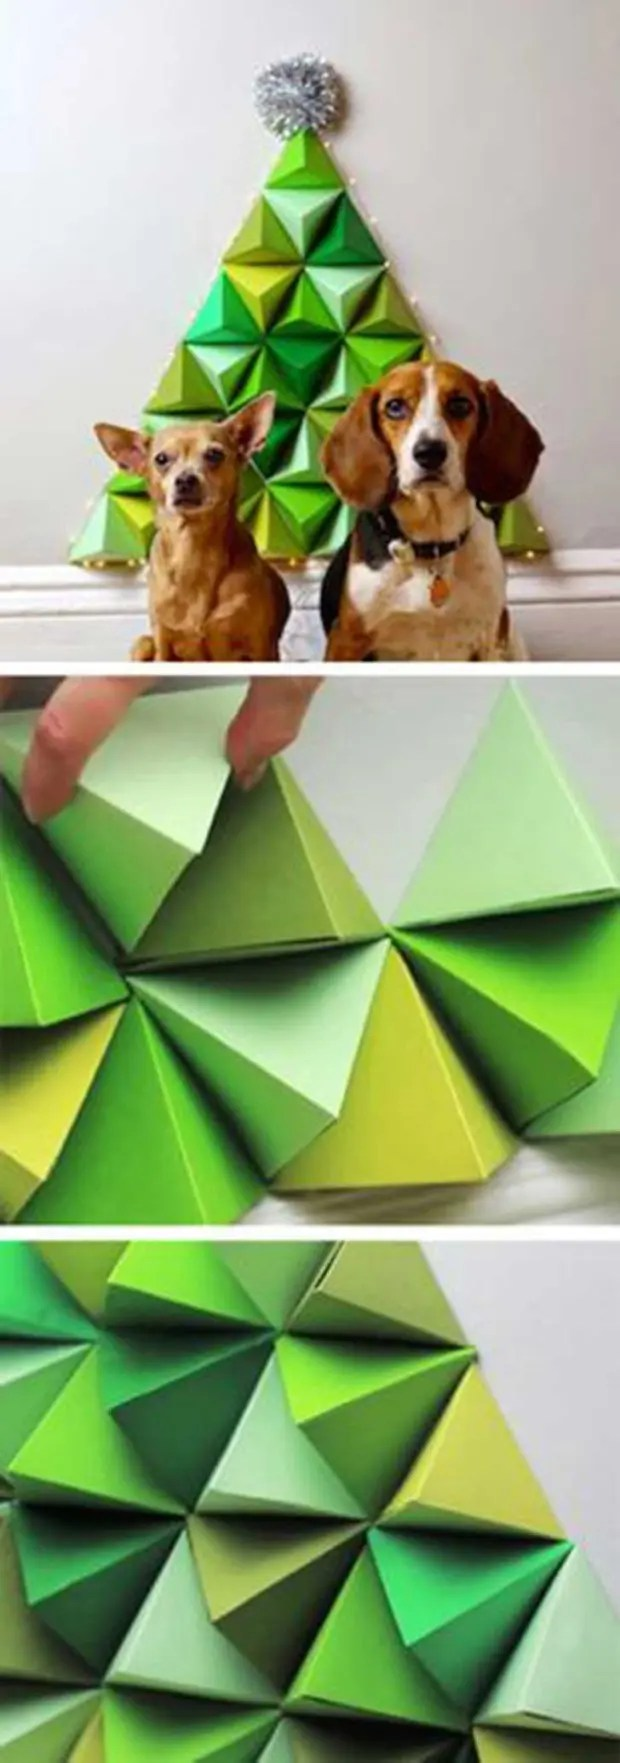 30-Insanely-Beautiful-Examples-of-DIY-Paper-Art-That-Will-Enhance-Your-Decor-homesthetics-decor-12